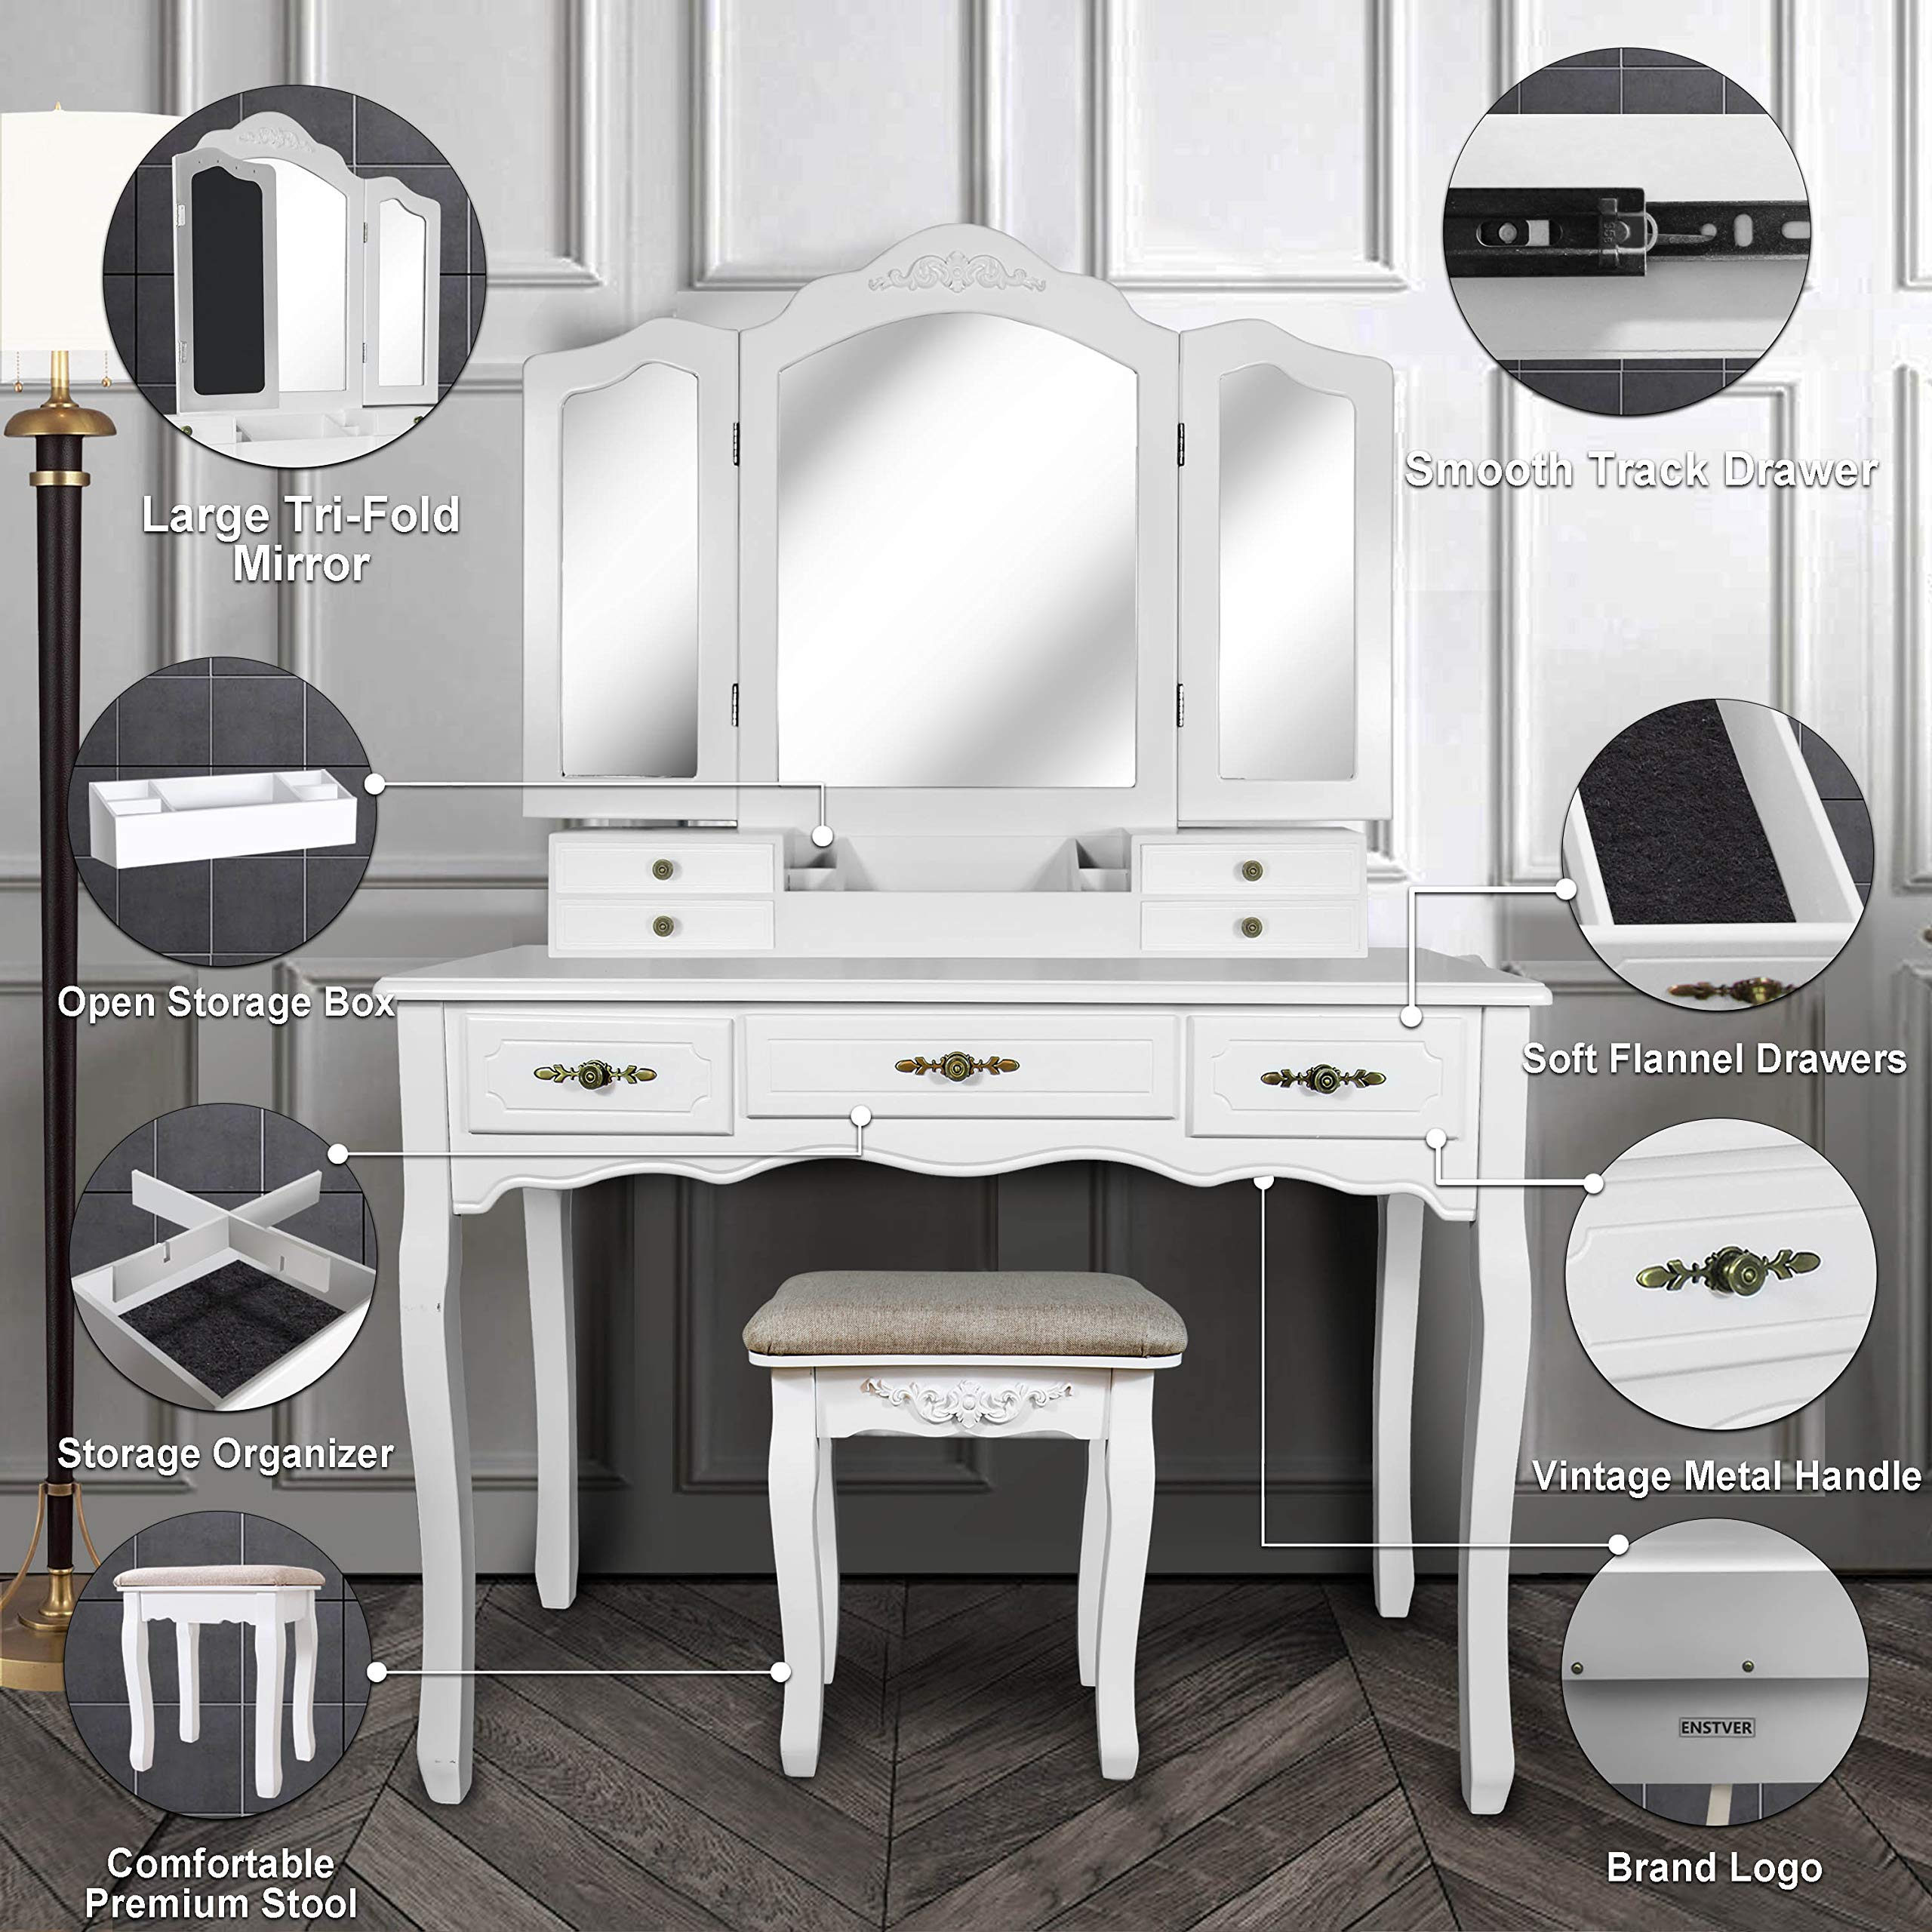 Vanity Beauty Station,Large Tri-Folding Necklace Hooked Mirrors,6 Organization 7 Drawers Makeup Dress Table with Cushioned Stool Set - White by ENSTVER (Image #7)